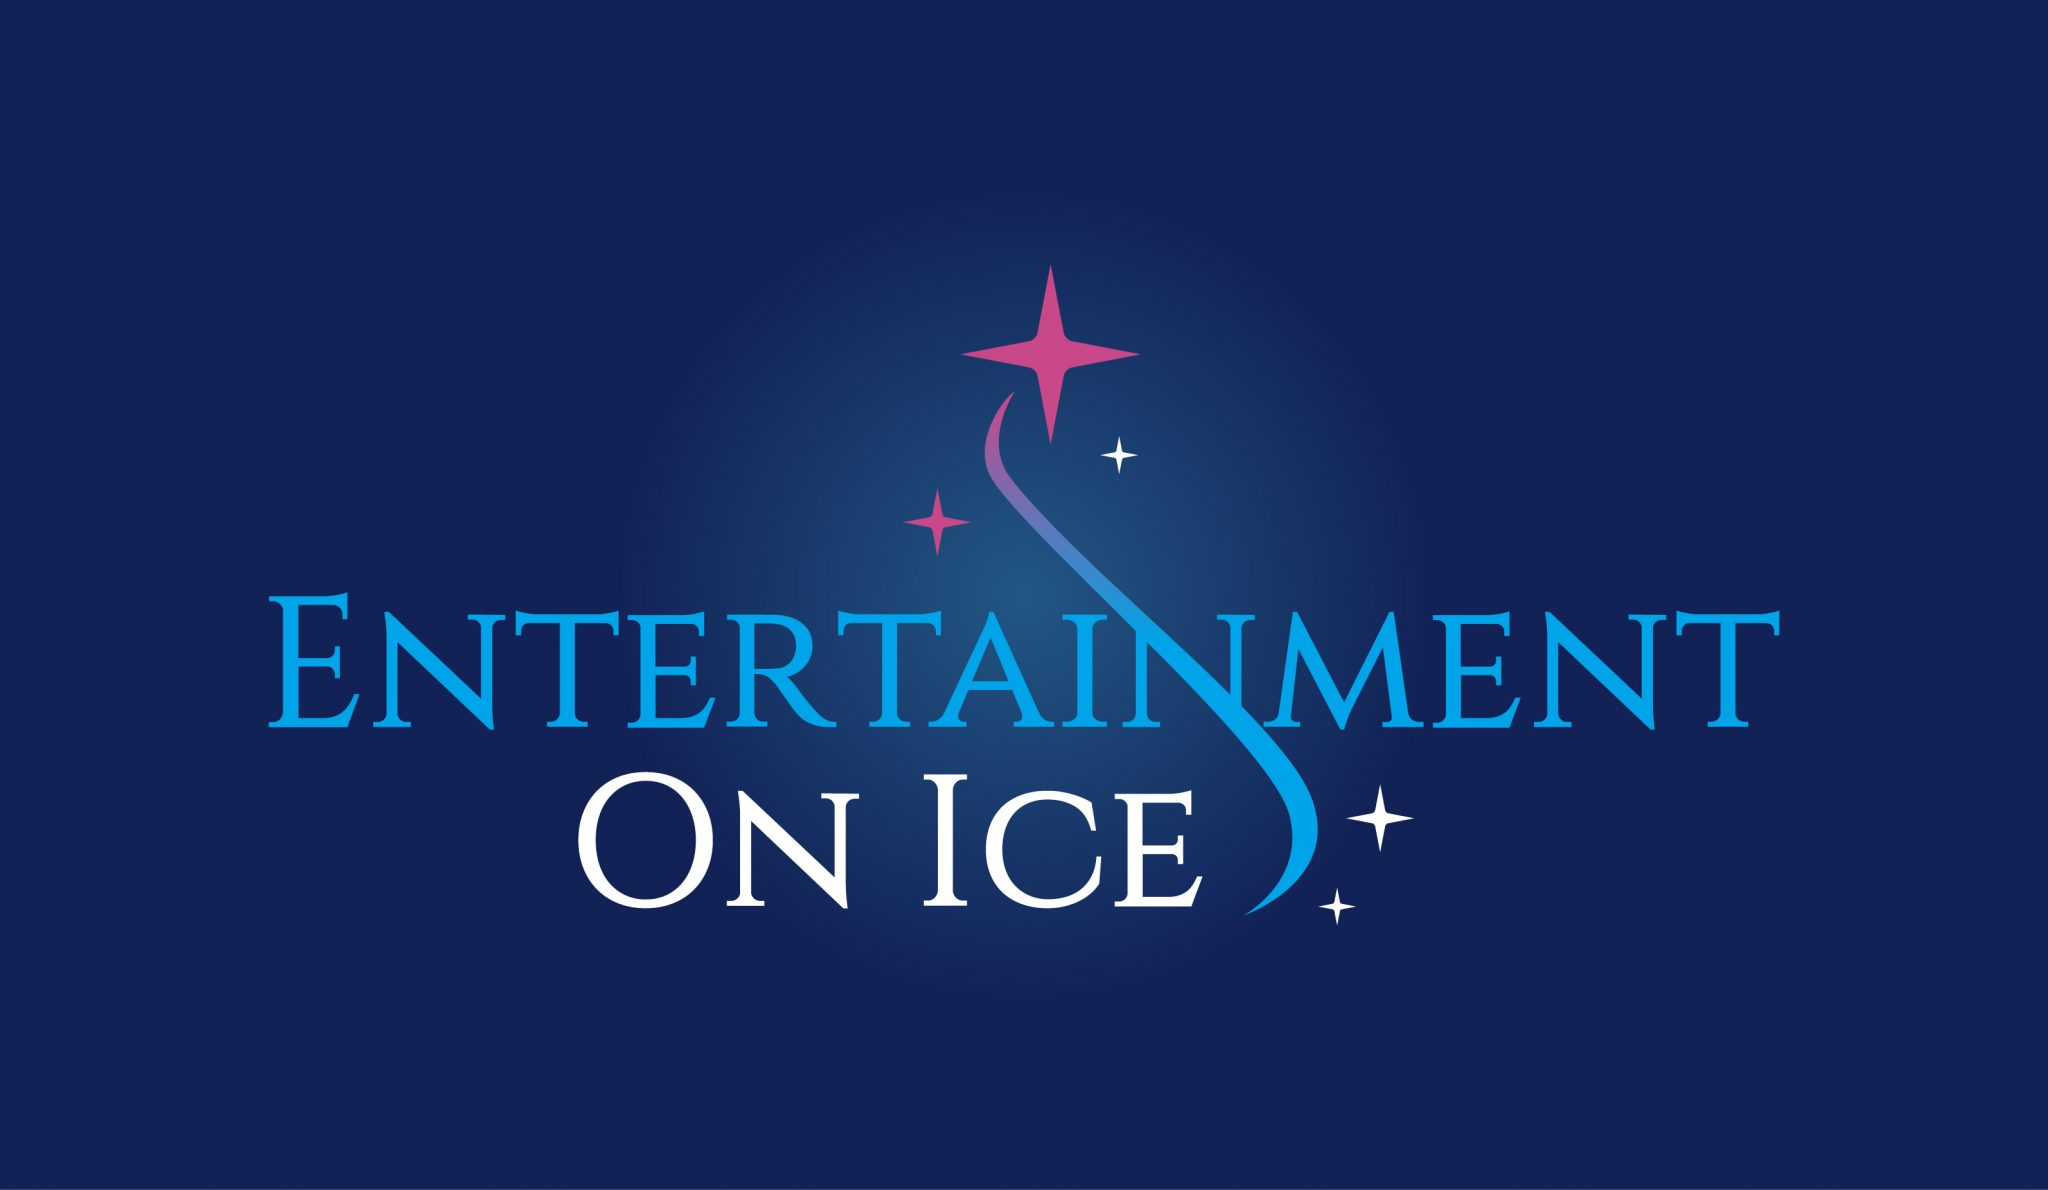 Entertainment on Ice, schaatsshow